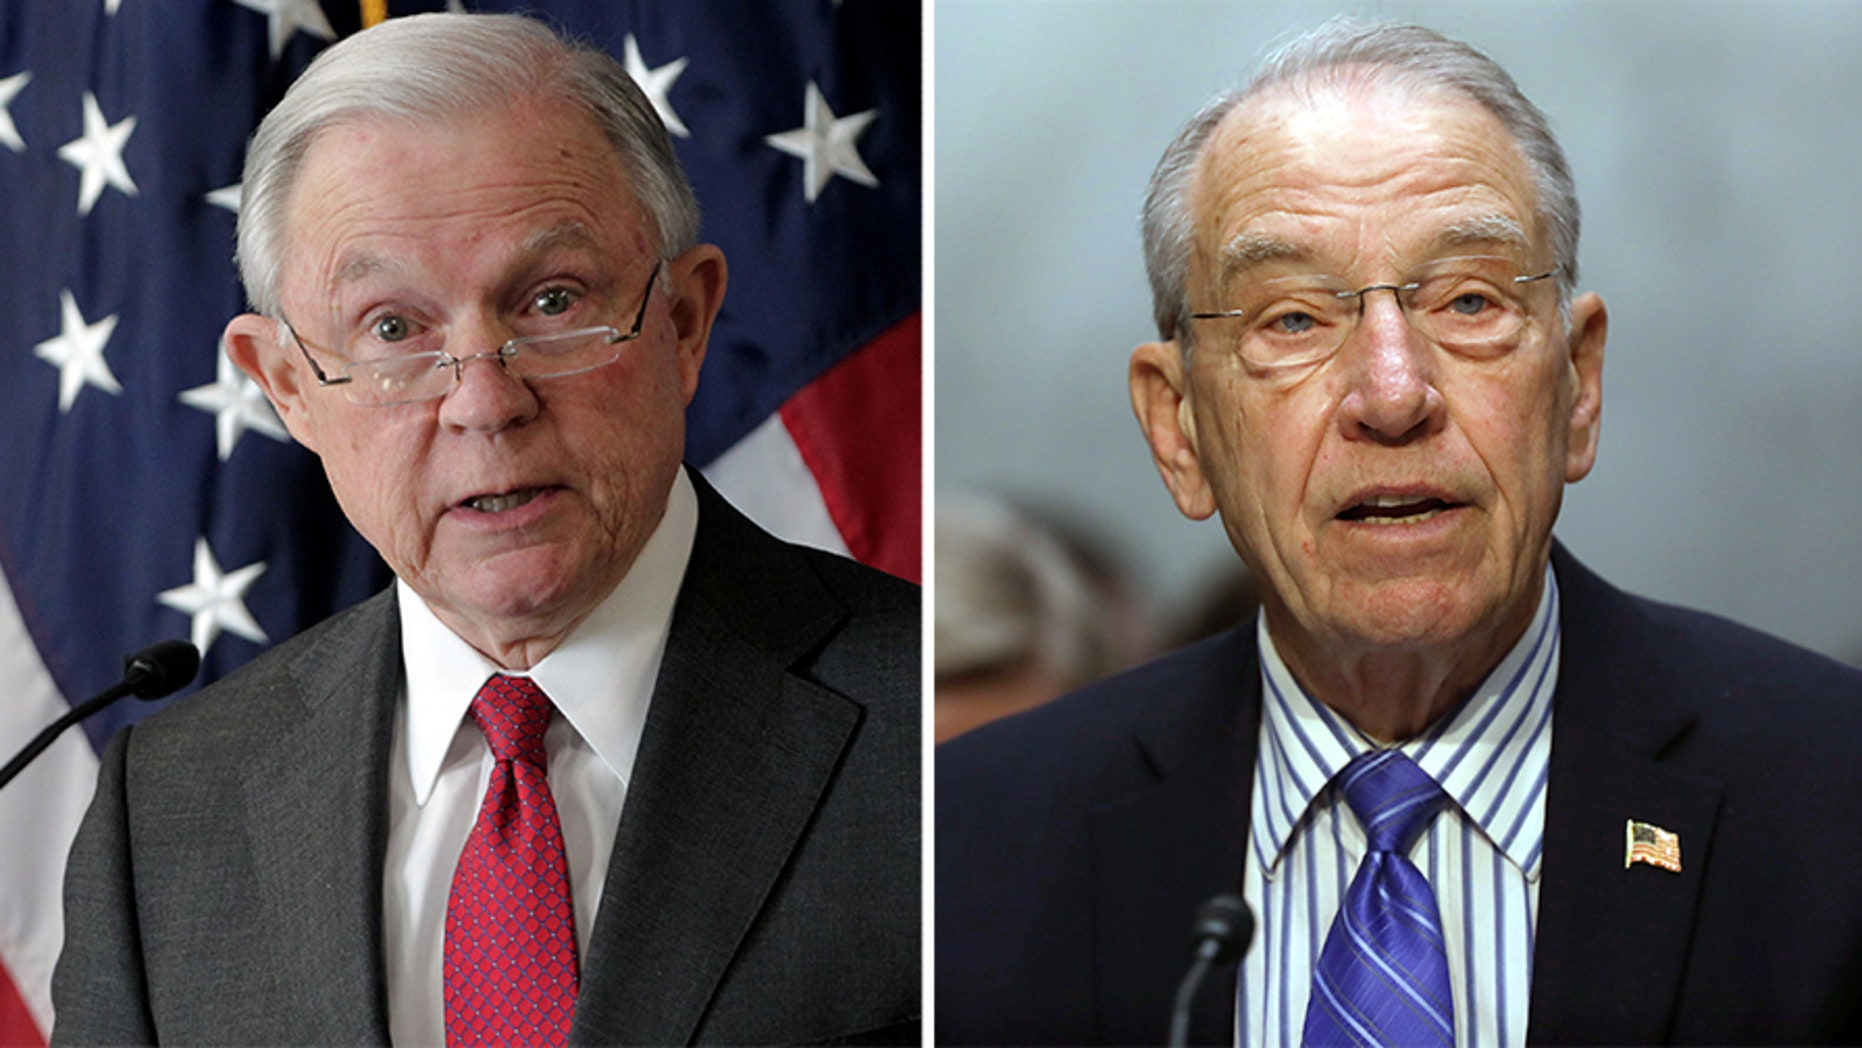 Sen. Chuck Grassley and Attorney General Jeff Sessions argued over sentencing reform this week.